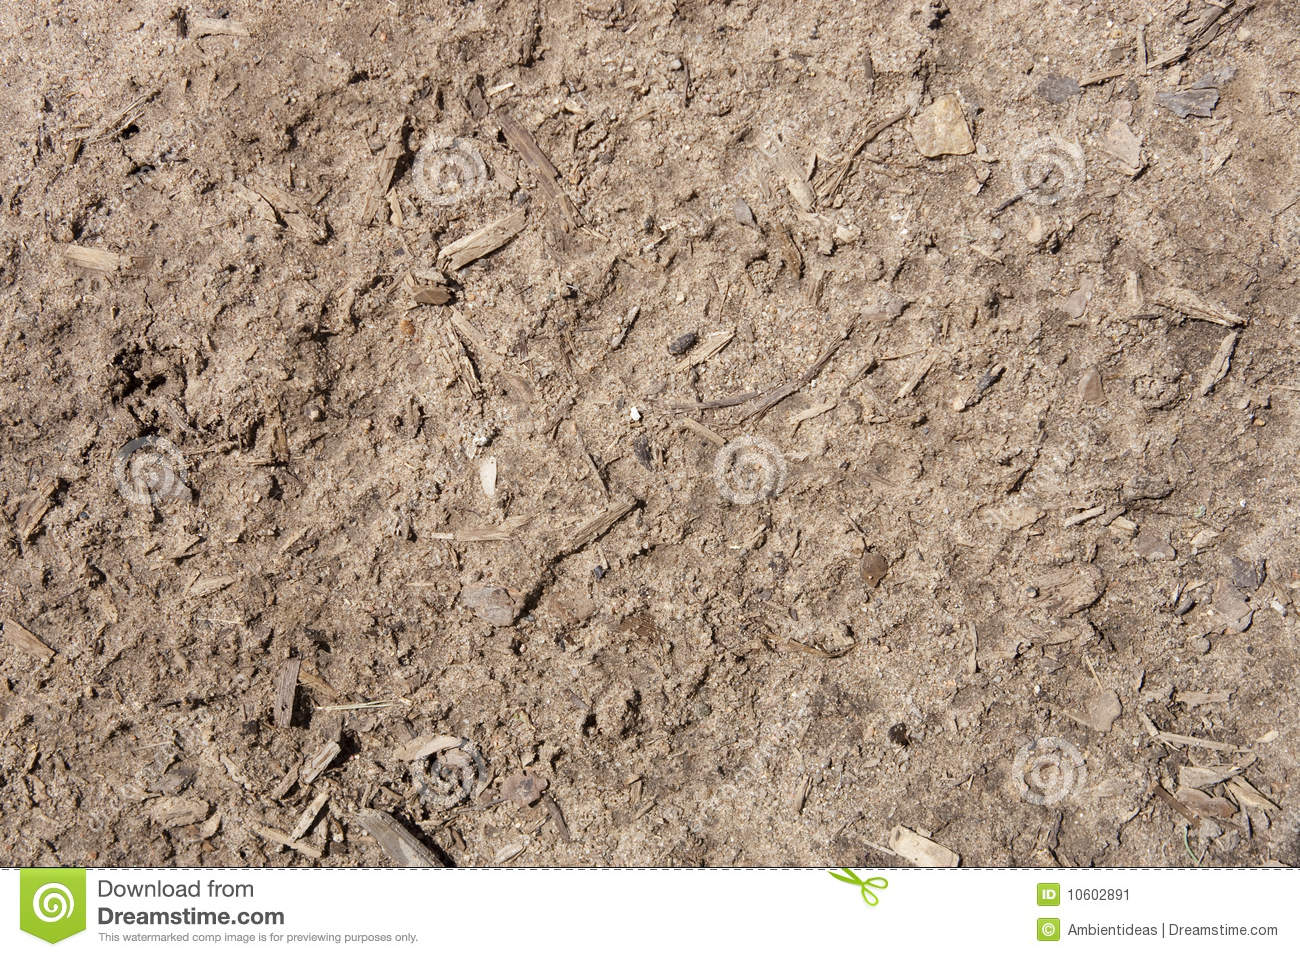 Wet soil and dirt stock image image 10602891 for Dirt and soil